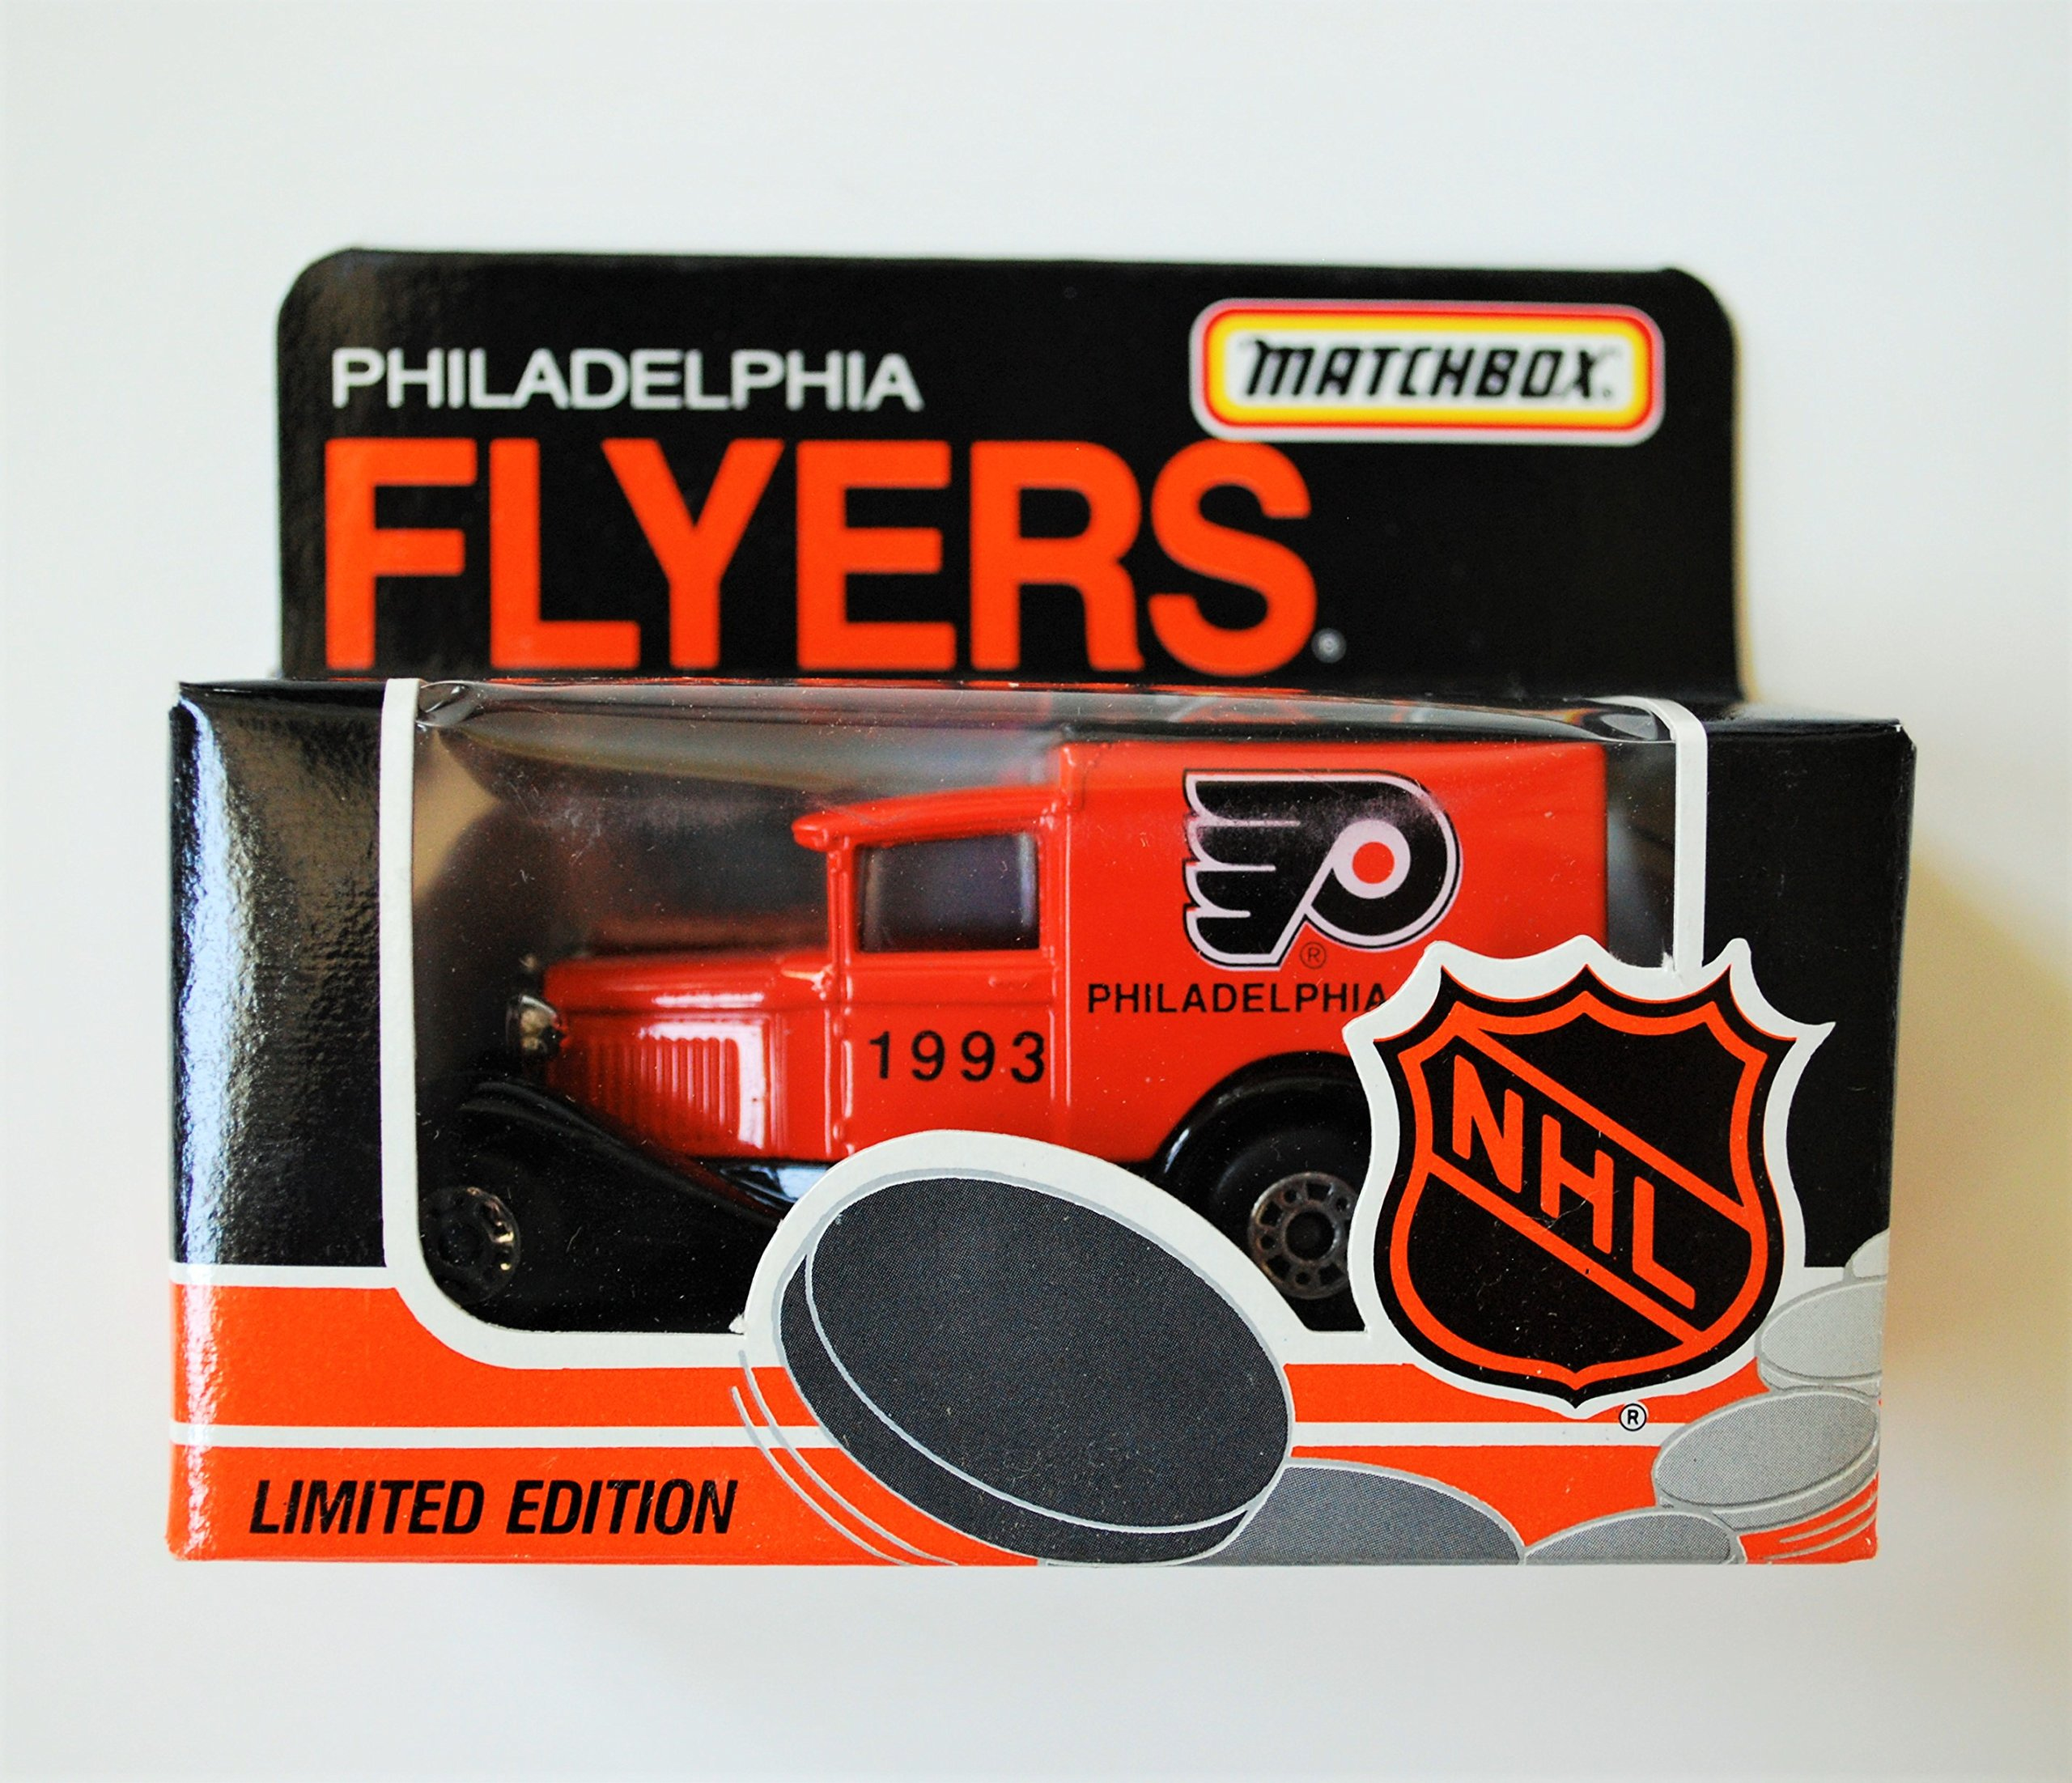 1993 Matchbox NHL Team Collectible 1:64 Scale Die Cast Model A Ford Truck PHILADELPHIA FLYERS